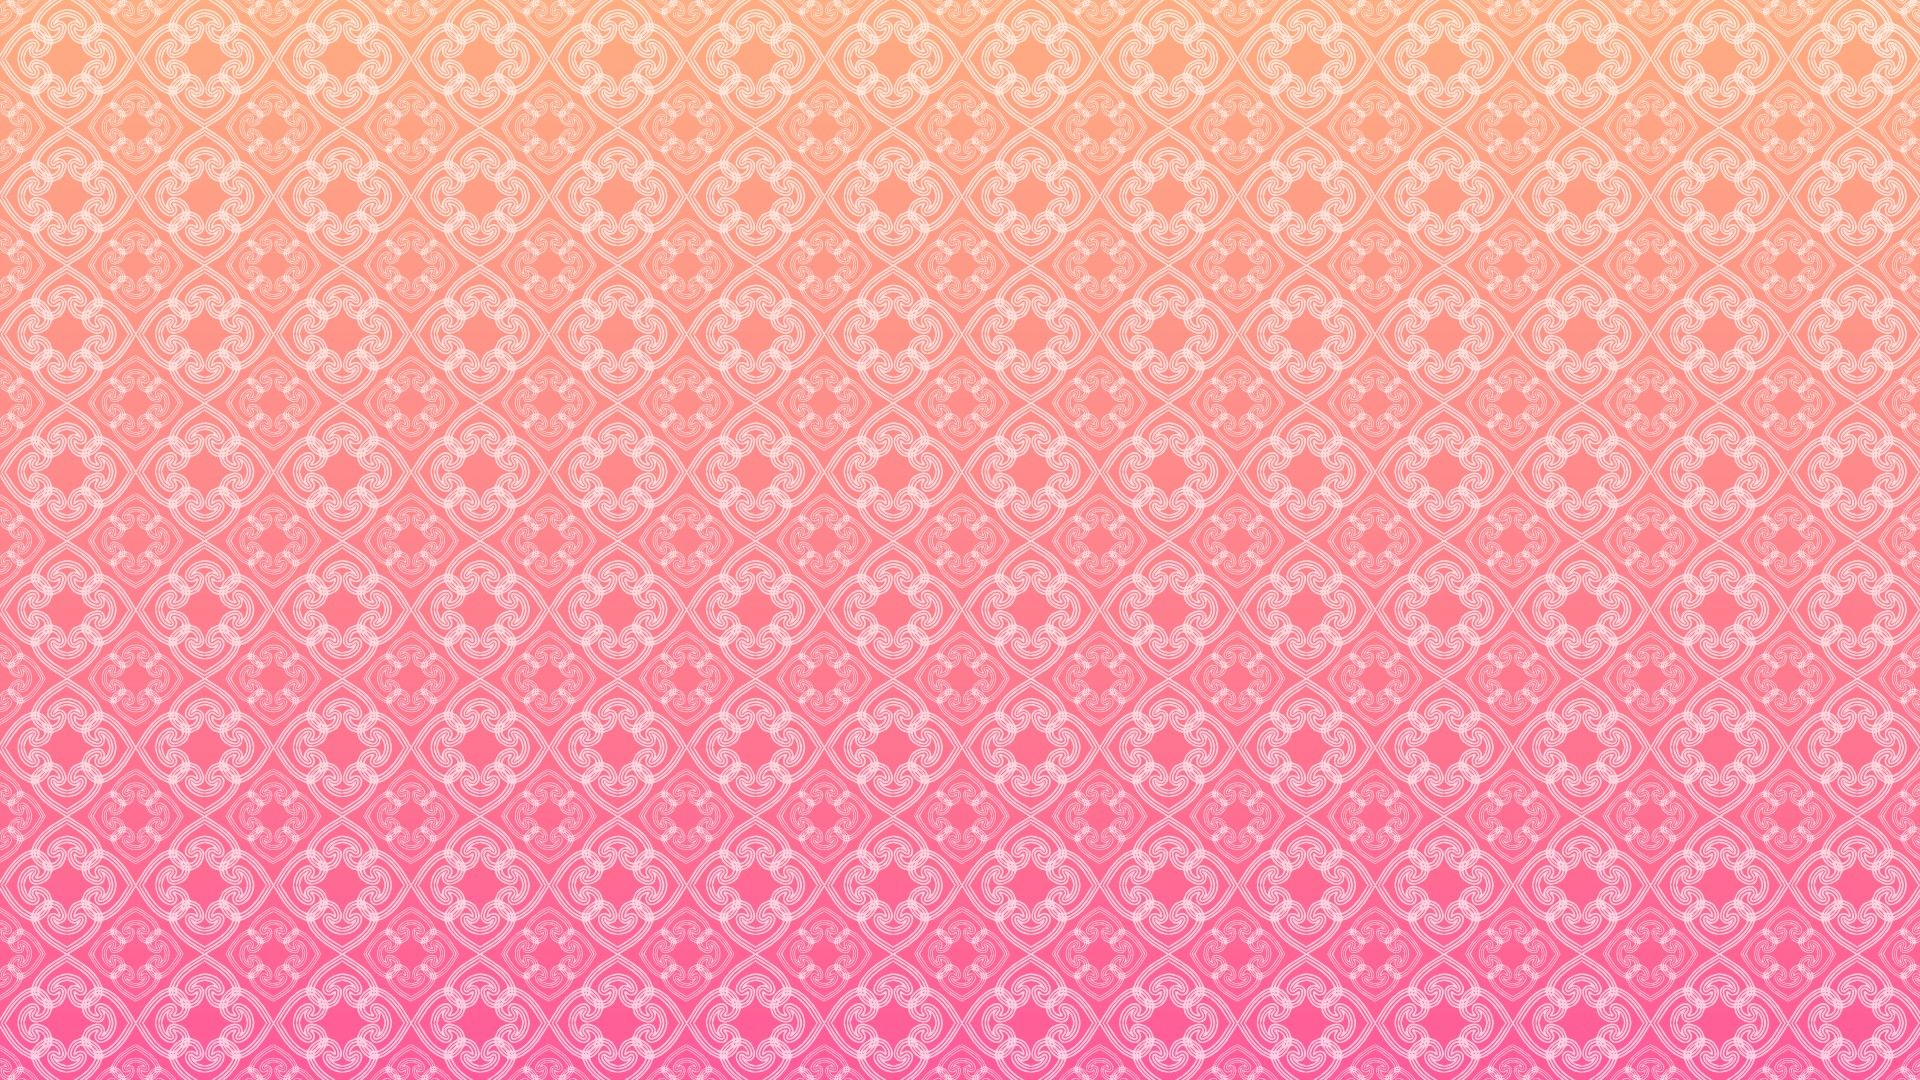 pink pattern background tumblr - Google Search | Places to ...